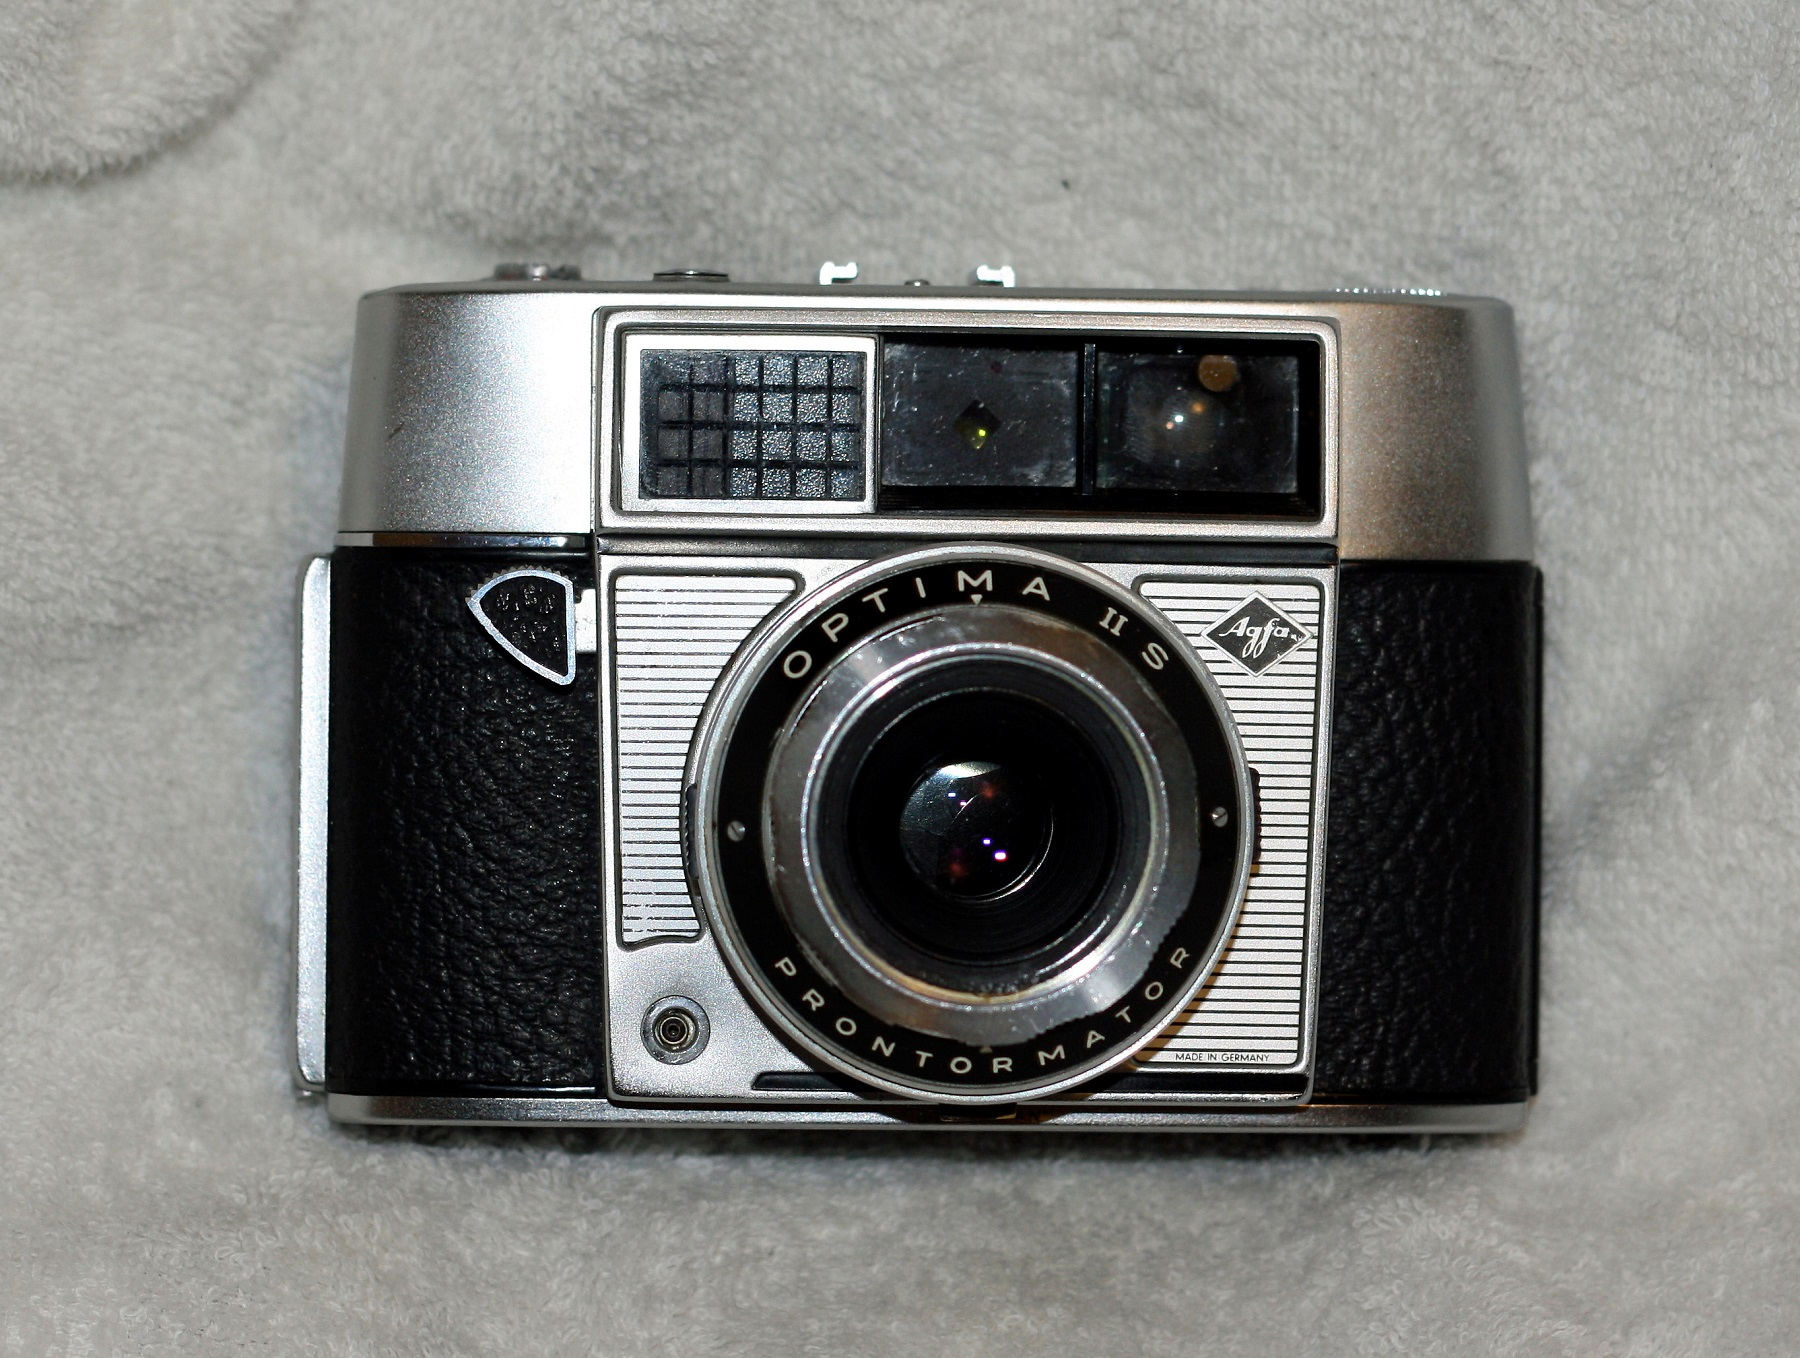 Agfa_Optima_pictures_002.jpg